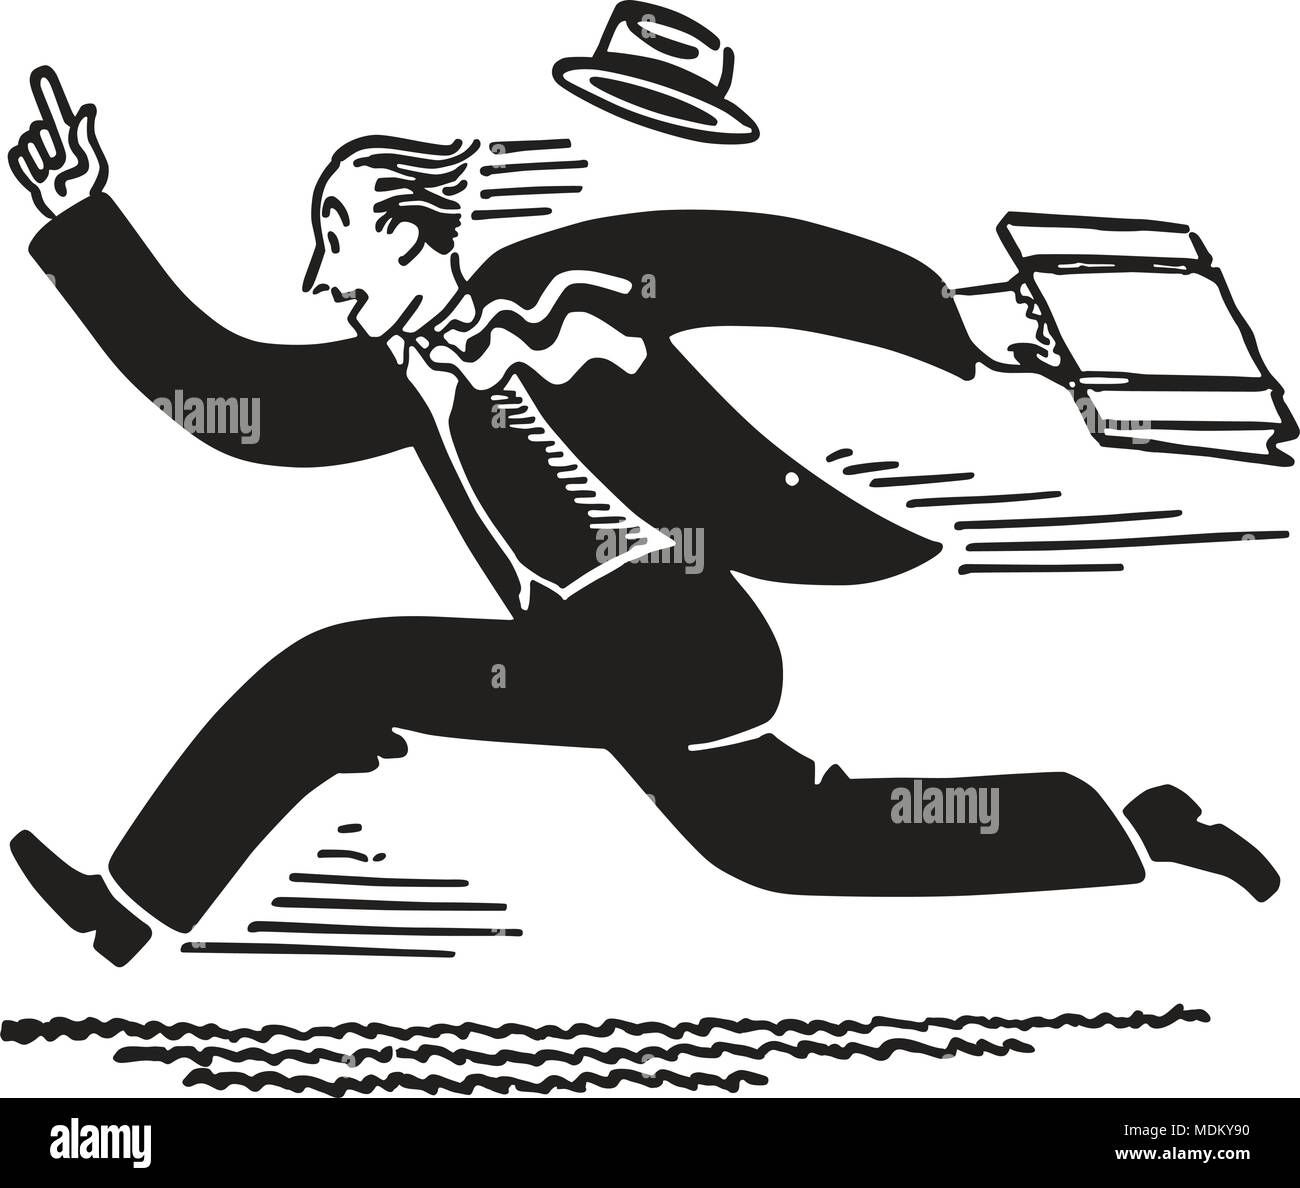 Businessman Running - Retro Clipart Illustration - Stock Image